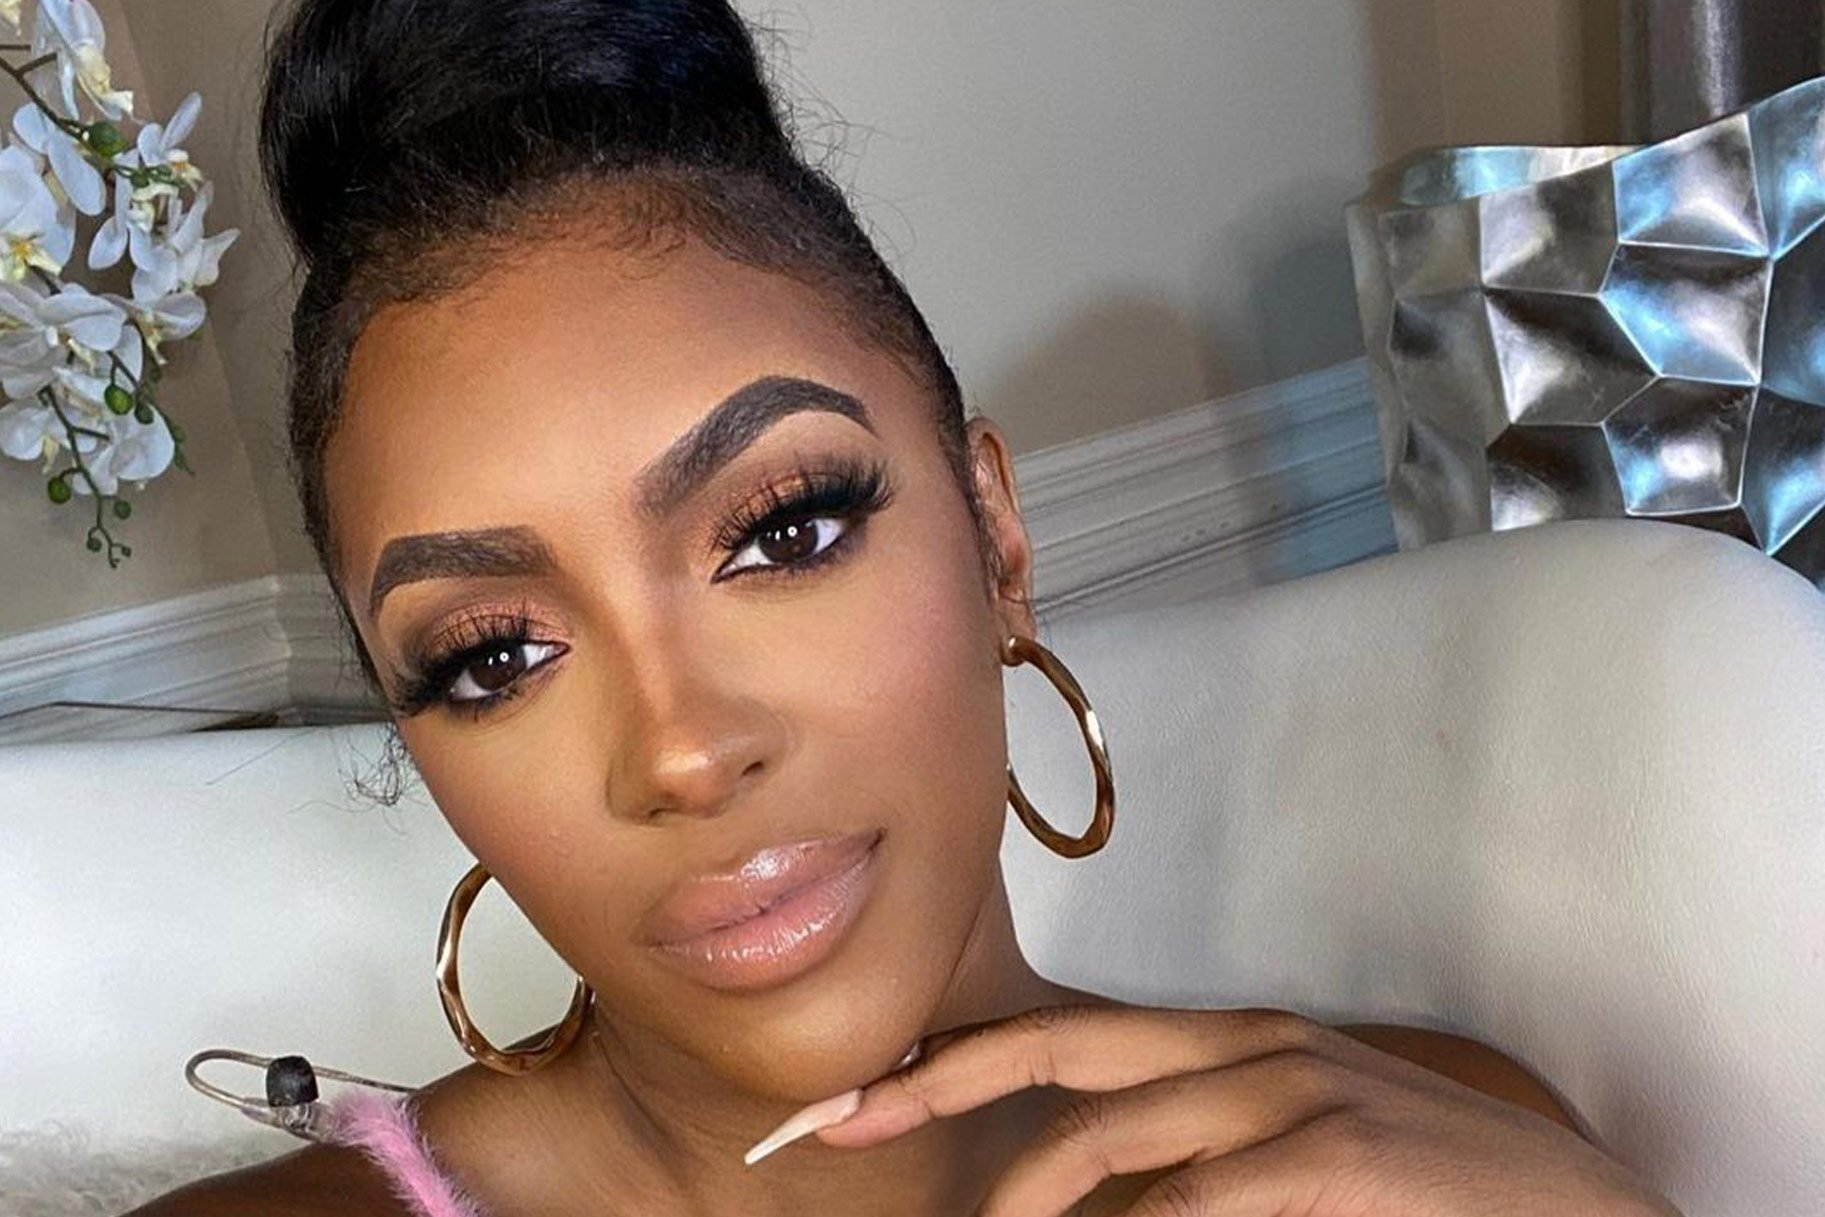 Porsha Williams Publicly Praises Her Mom – See The Amazing Photo She Shared